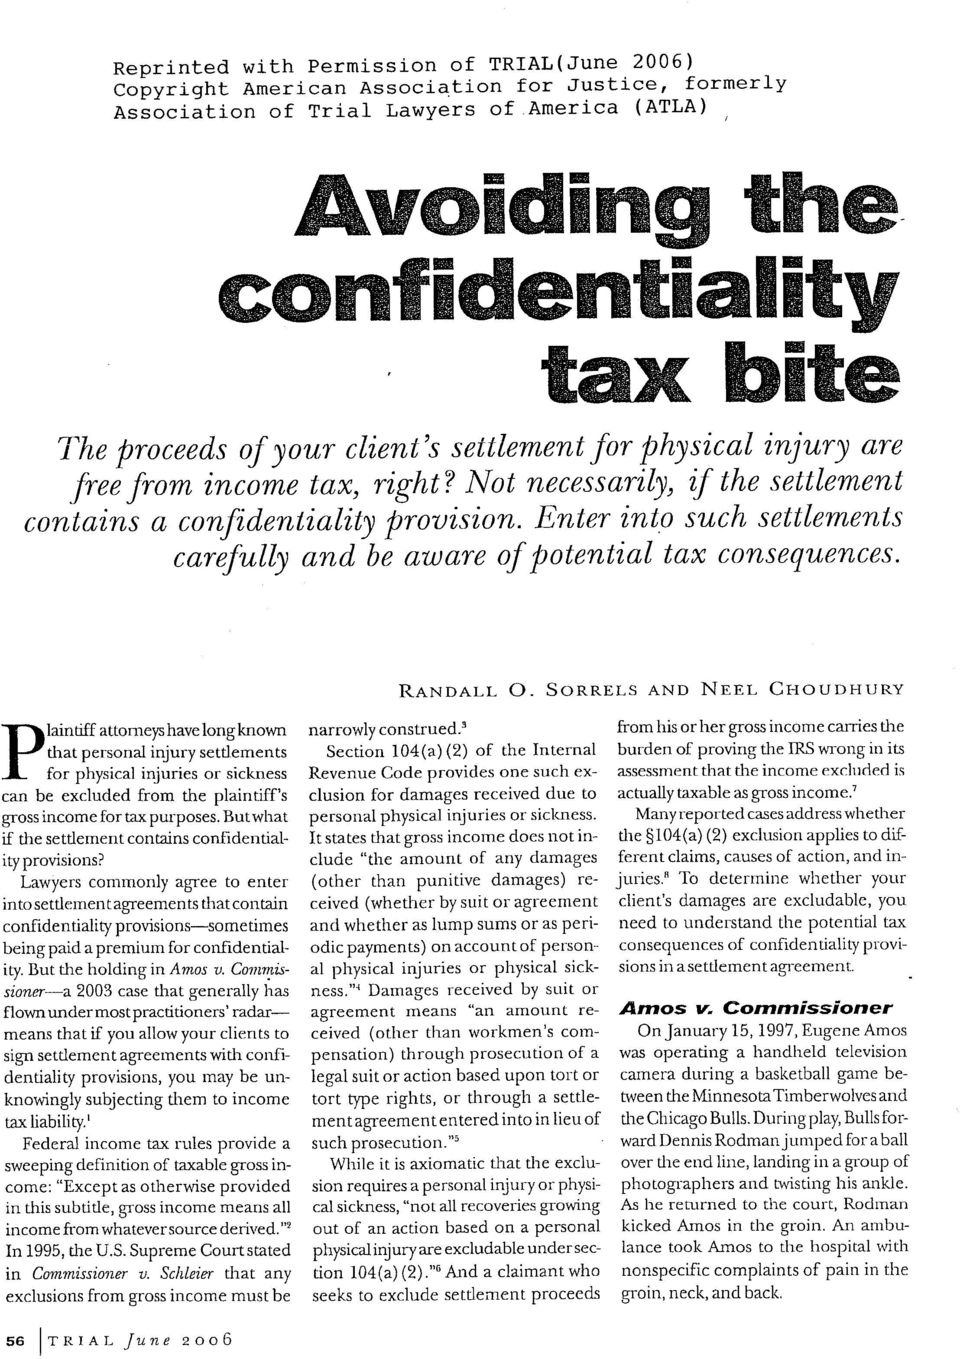 Enter into such settlements carefully and be aware of potential tax consequences. ReNoaI-r O.